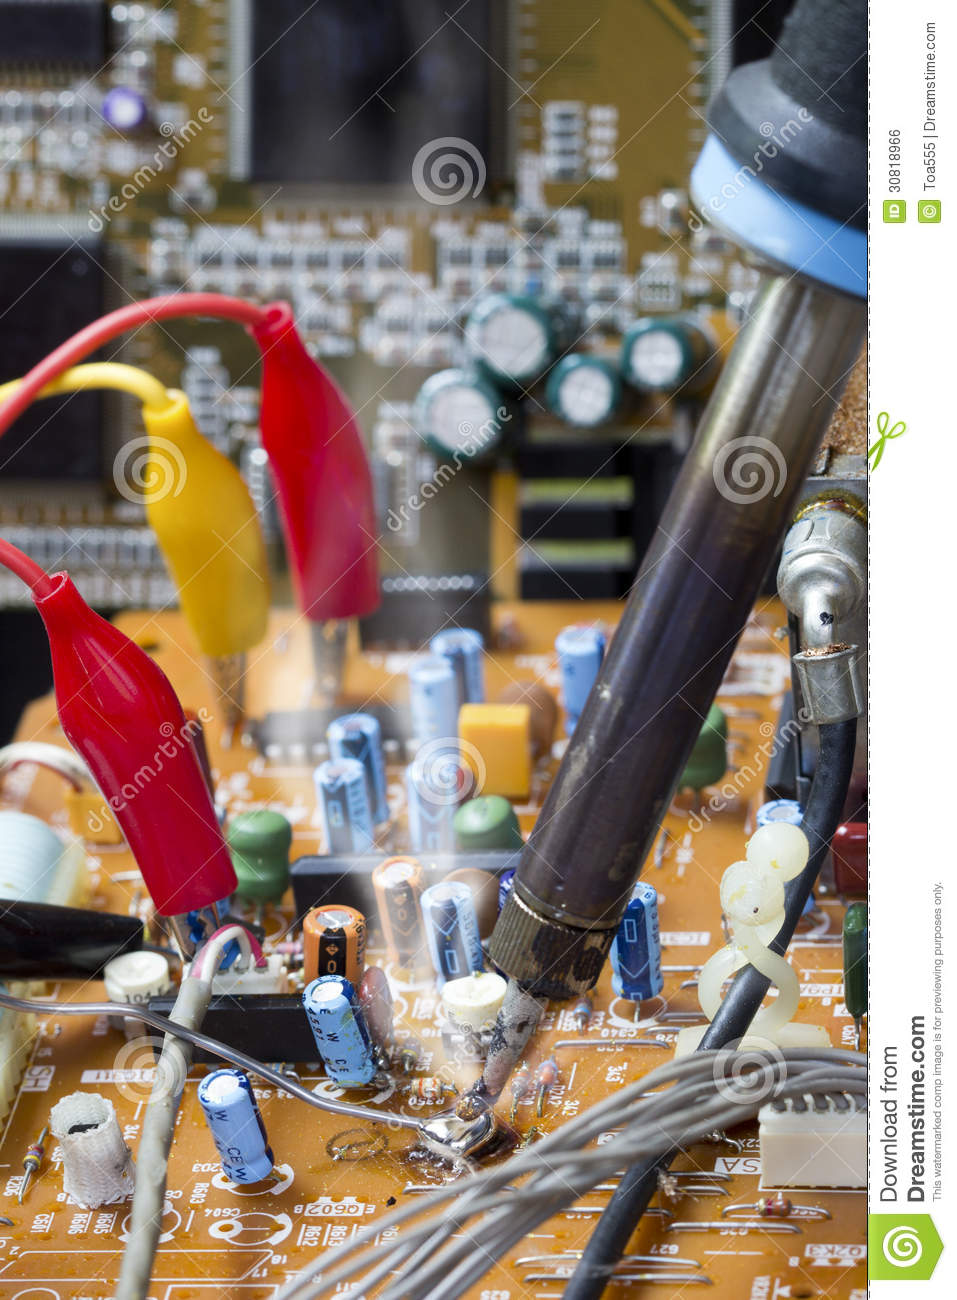 soldering iron on electronic boards royalty free stock image image 30818966. Black Bedroom Furniture Sets. Home Design Ideas